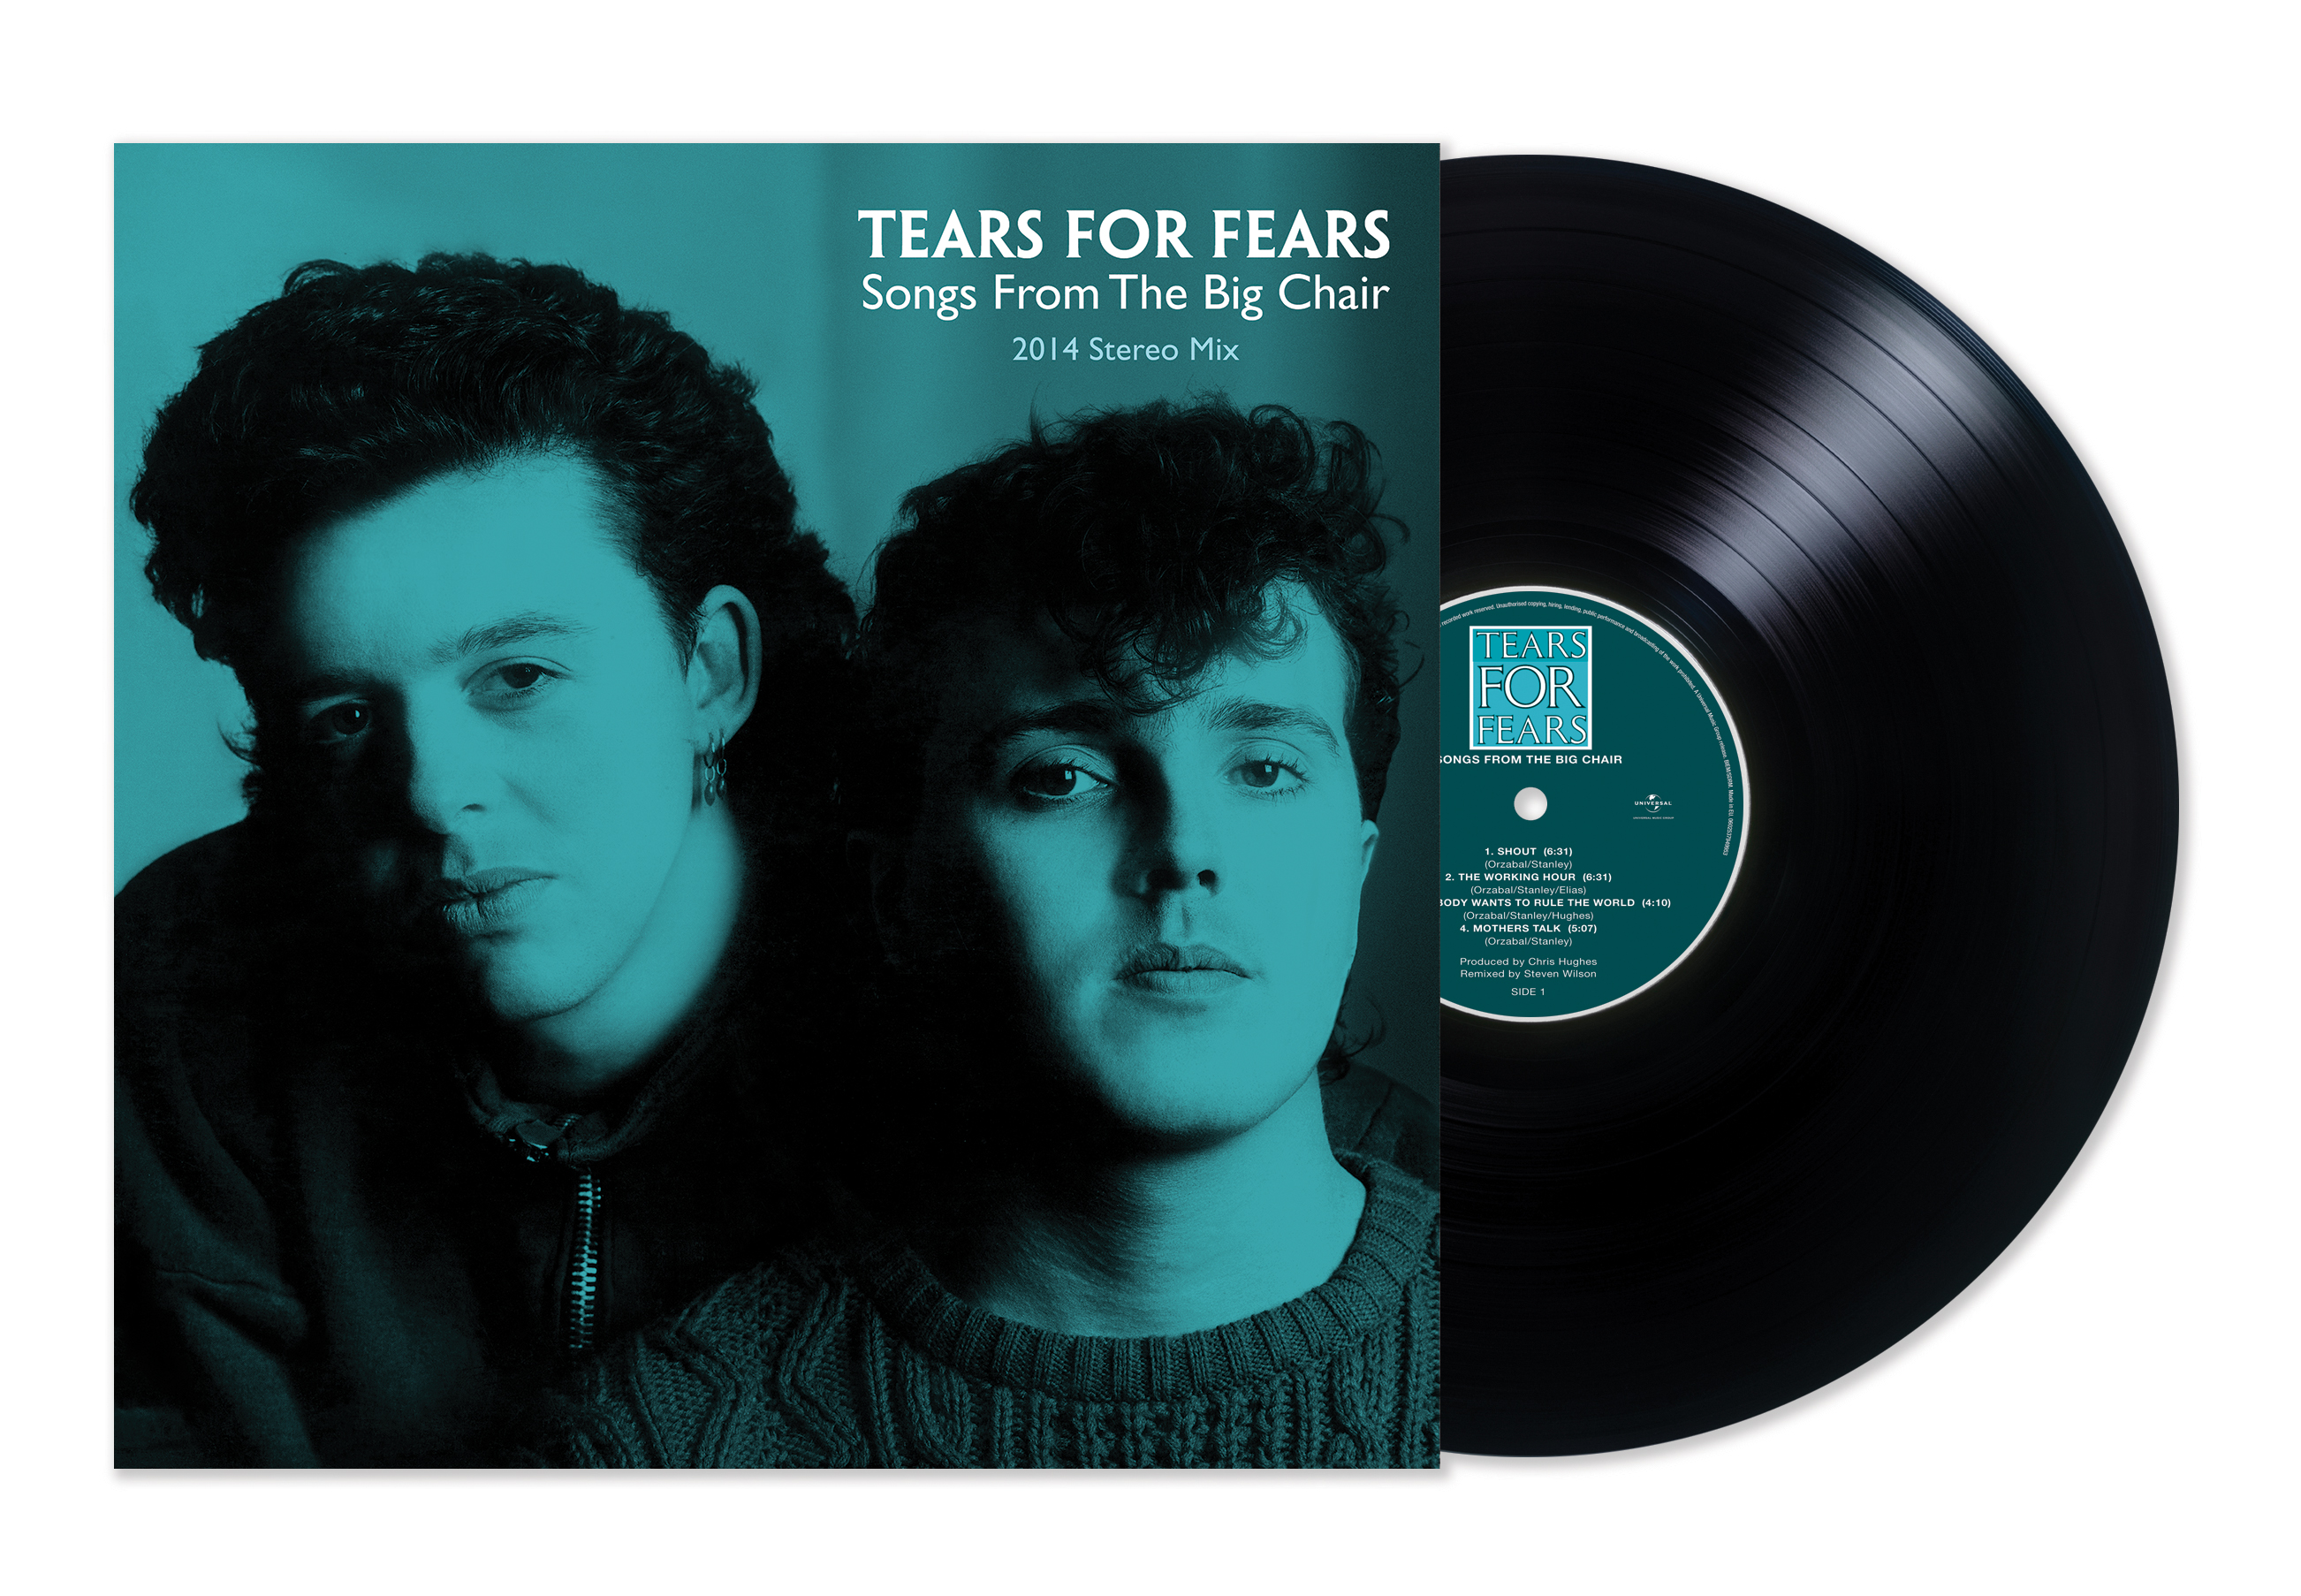 Tears For Fears / Songs From The Big Chair 2014 Stereo Mix on vinyl